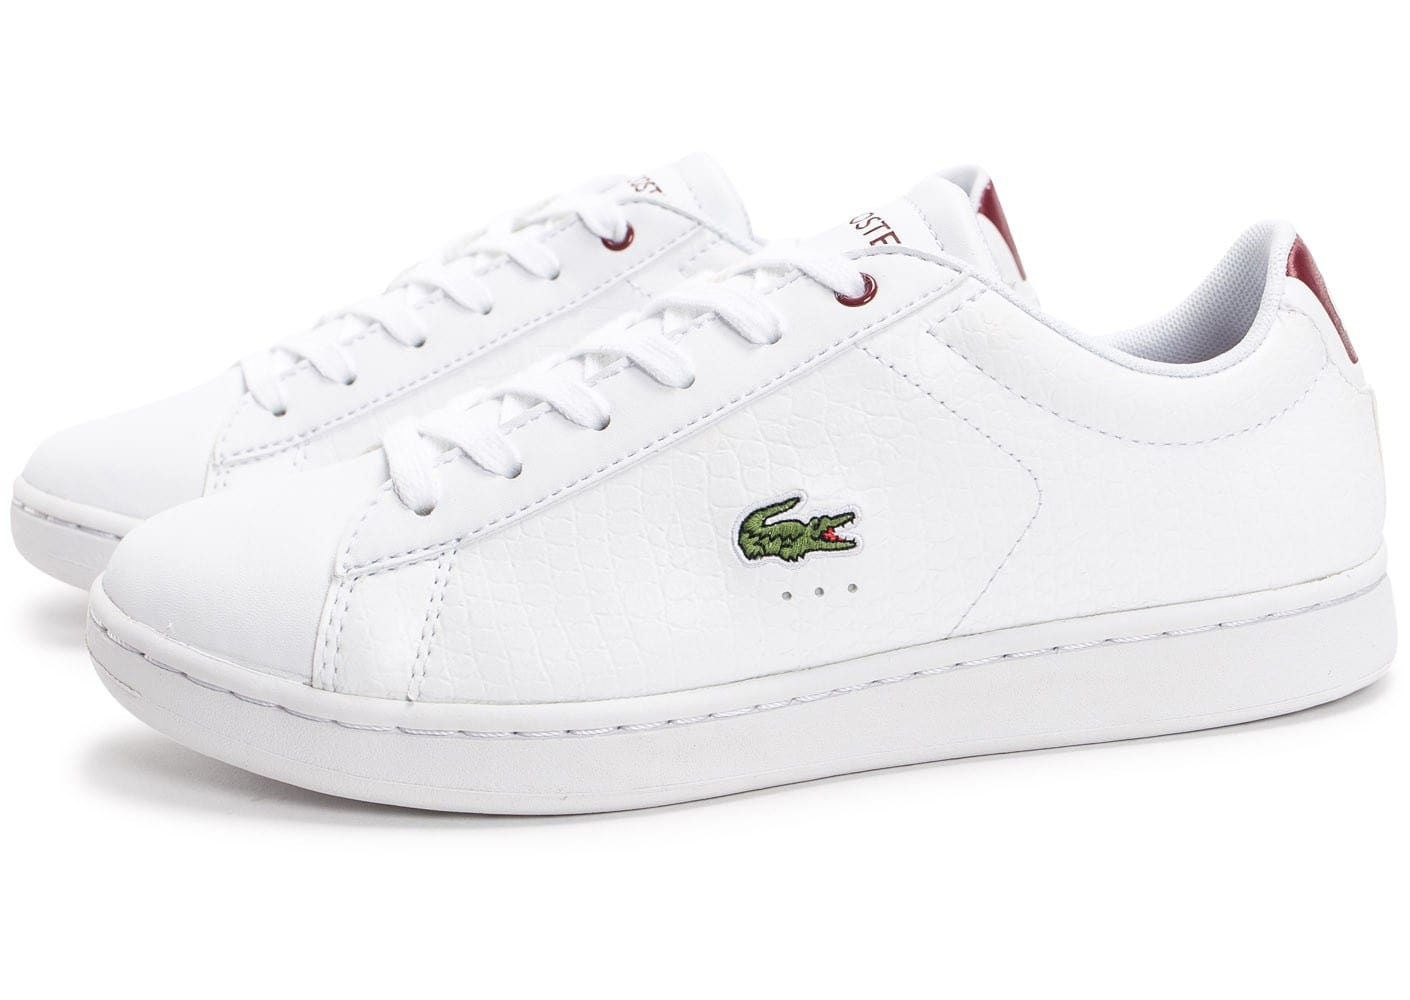 Rouge Evo Chaussures Femme Lacoste Carnaby Blanche Croc Et Baskets W0FqnXx1f